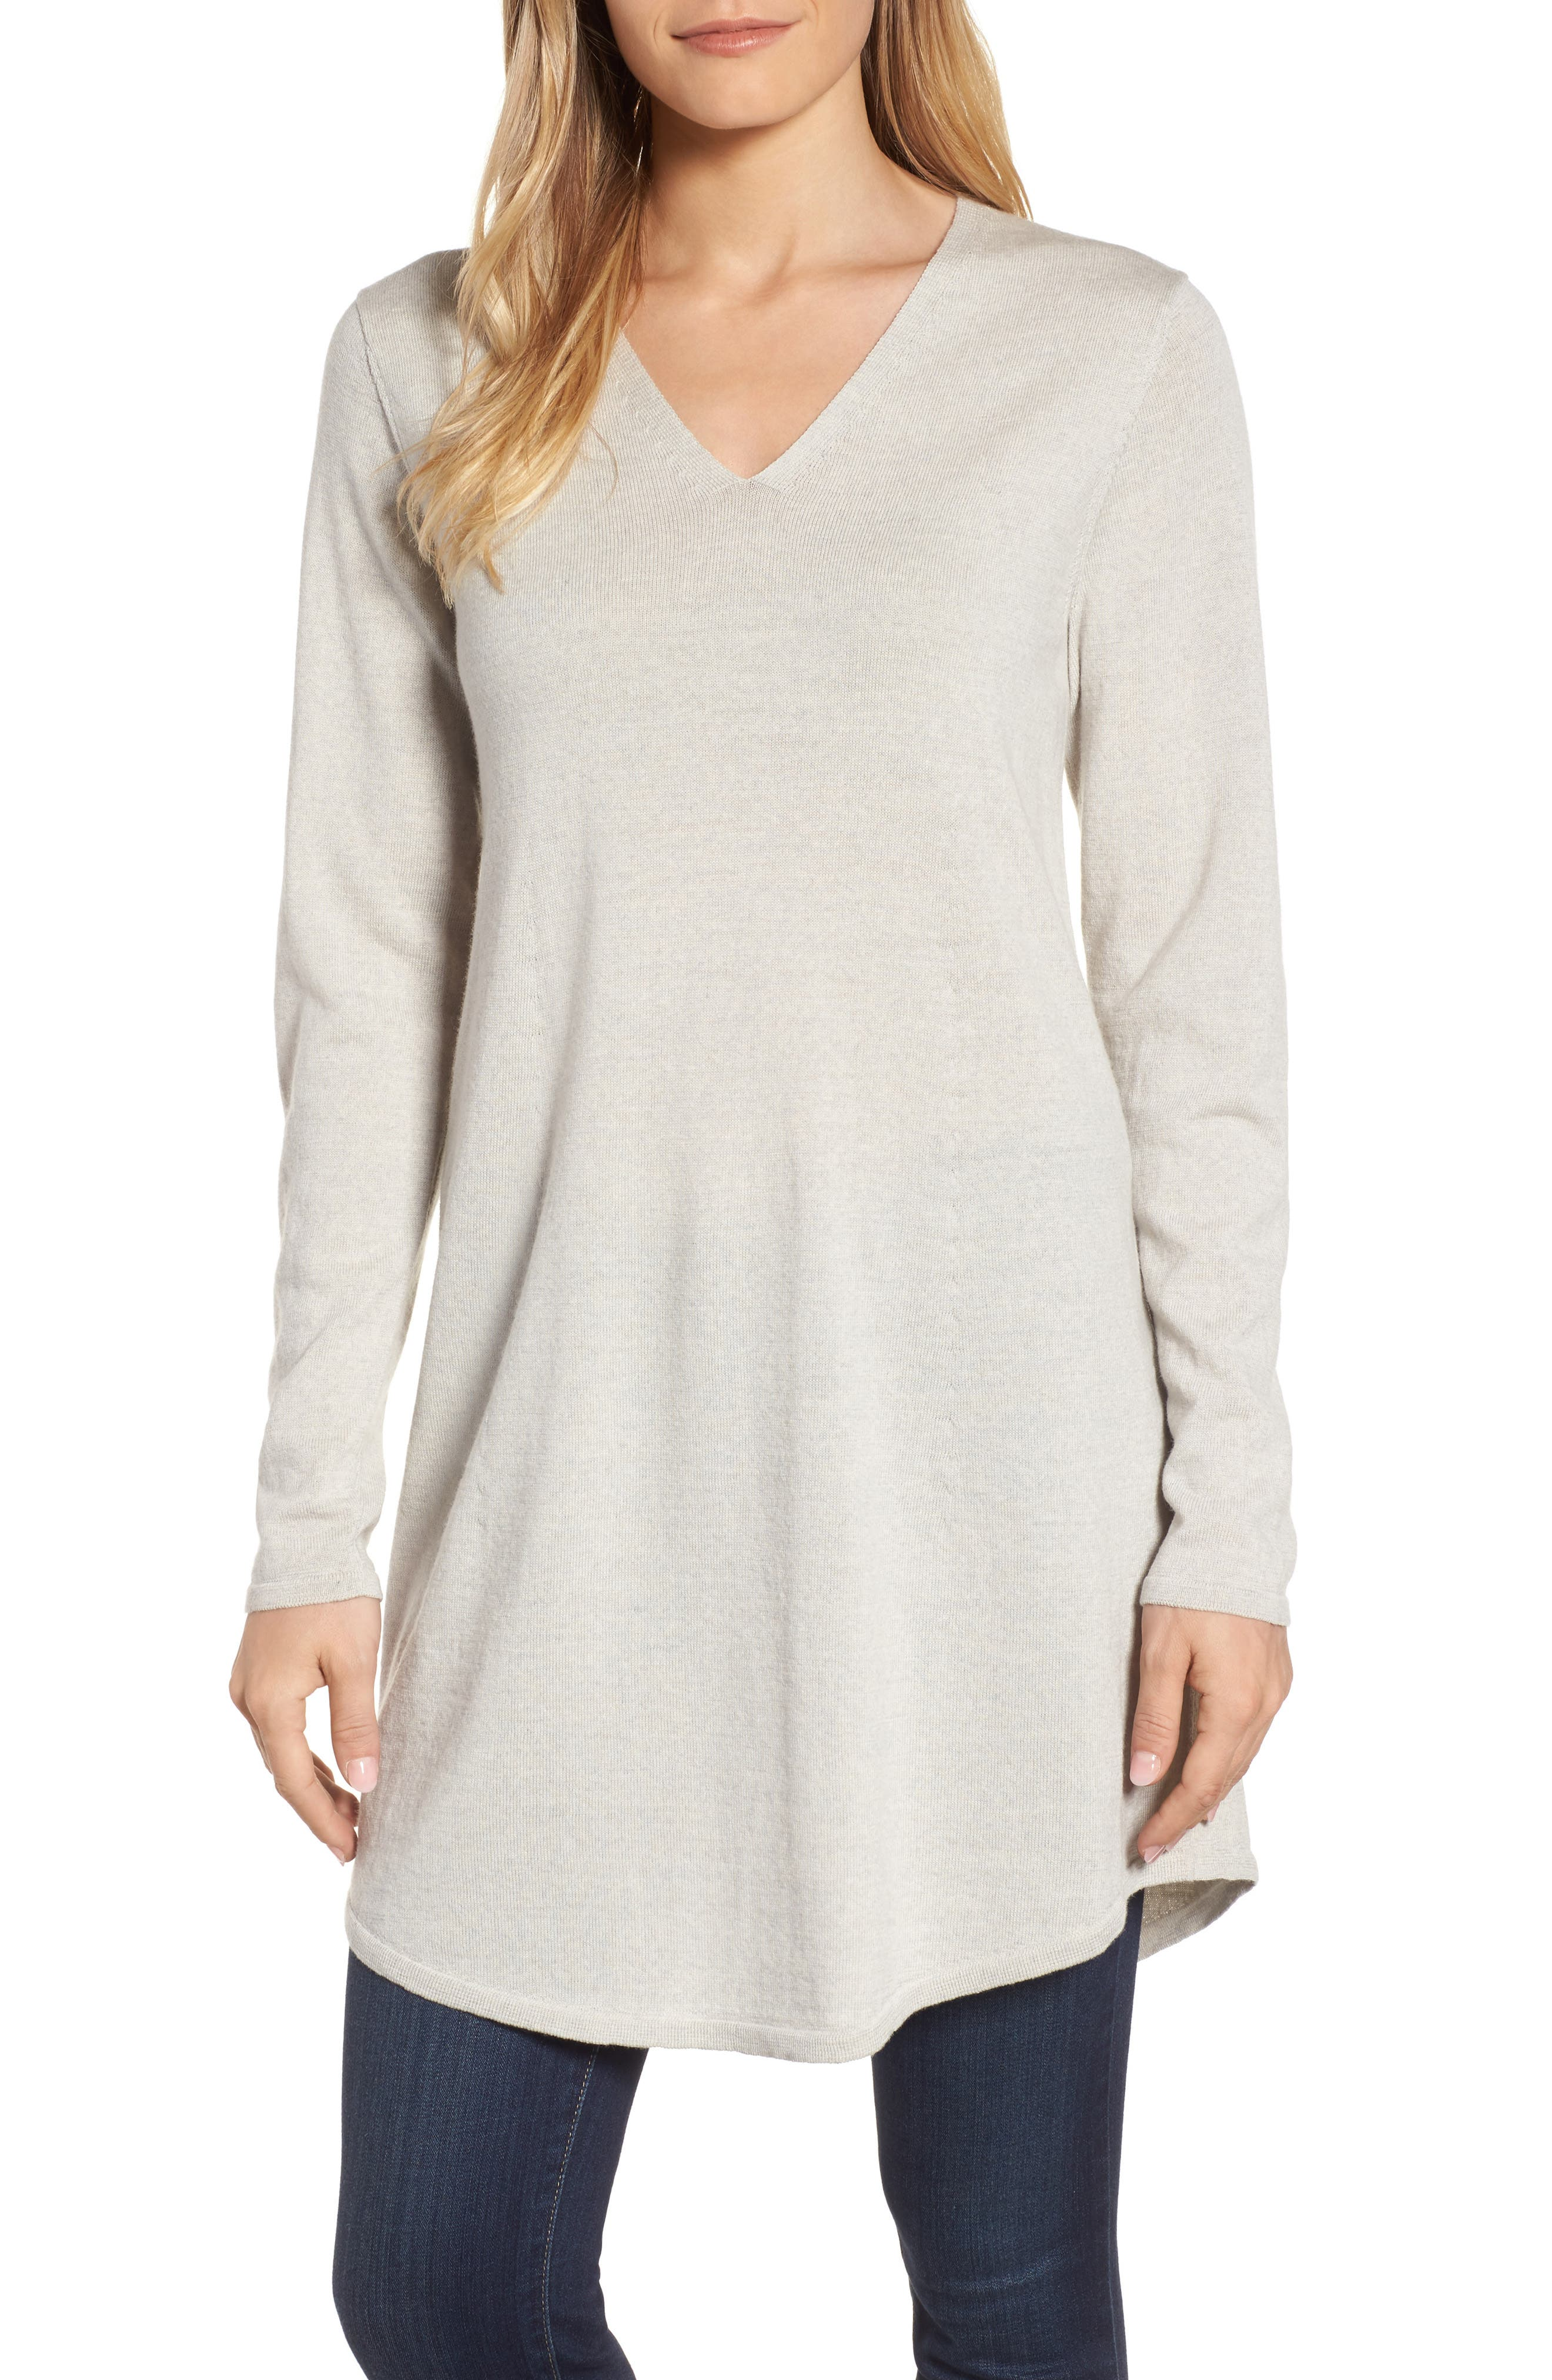 Eileen Fisher Lightweight Merino Jersey V-Neck Tunic (Regular & Petite)